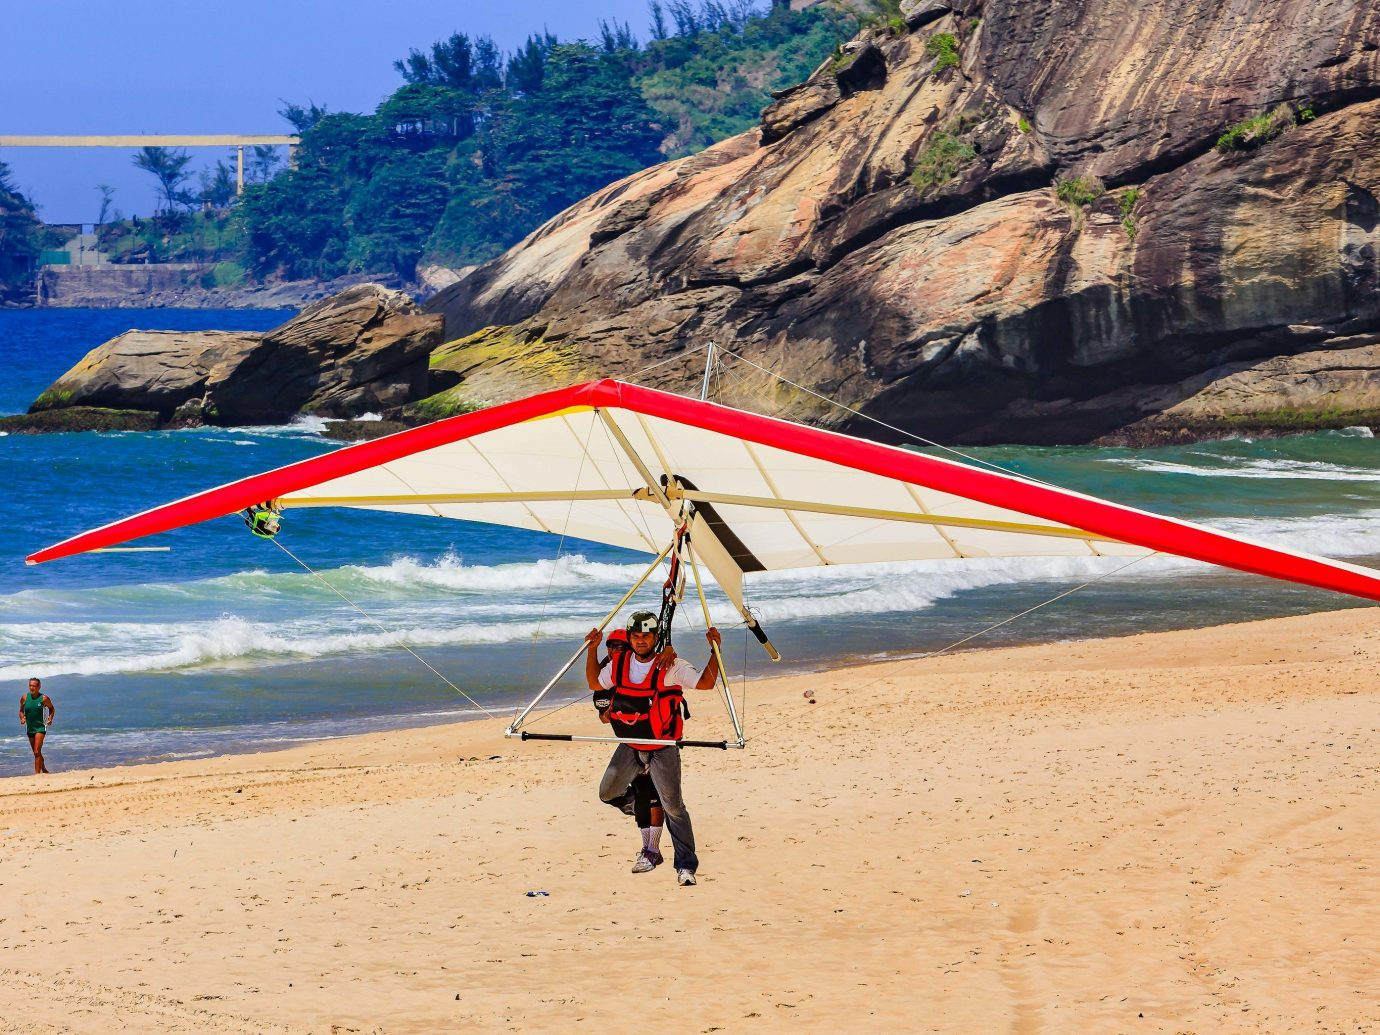 hang gliding Trip Ideas outdoor mountain sky gliding air sports sports glider windsports Beach Adventure Nature ultralight aviation atmosphere of earth recreation outdoor recreation aircraft flight extreme sport wing aviation shore sandy